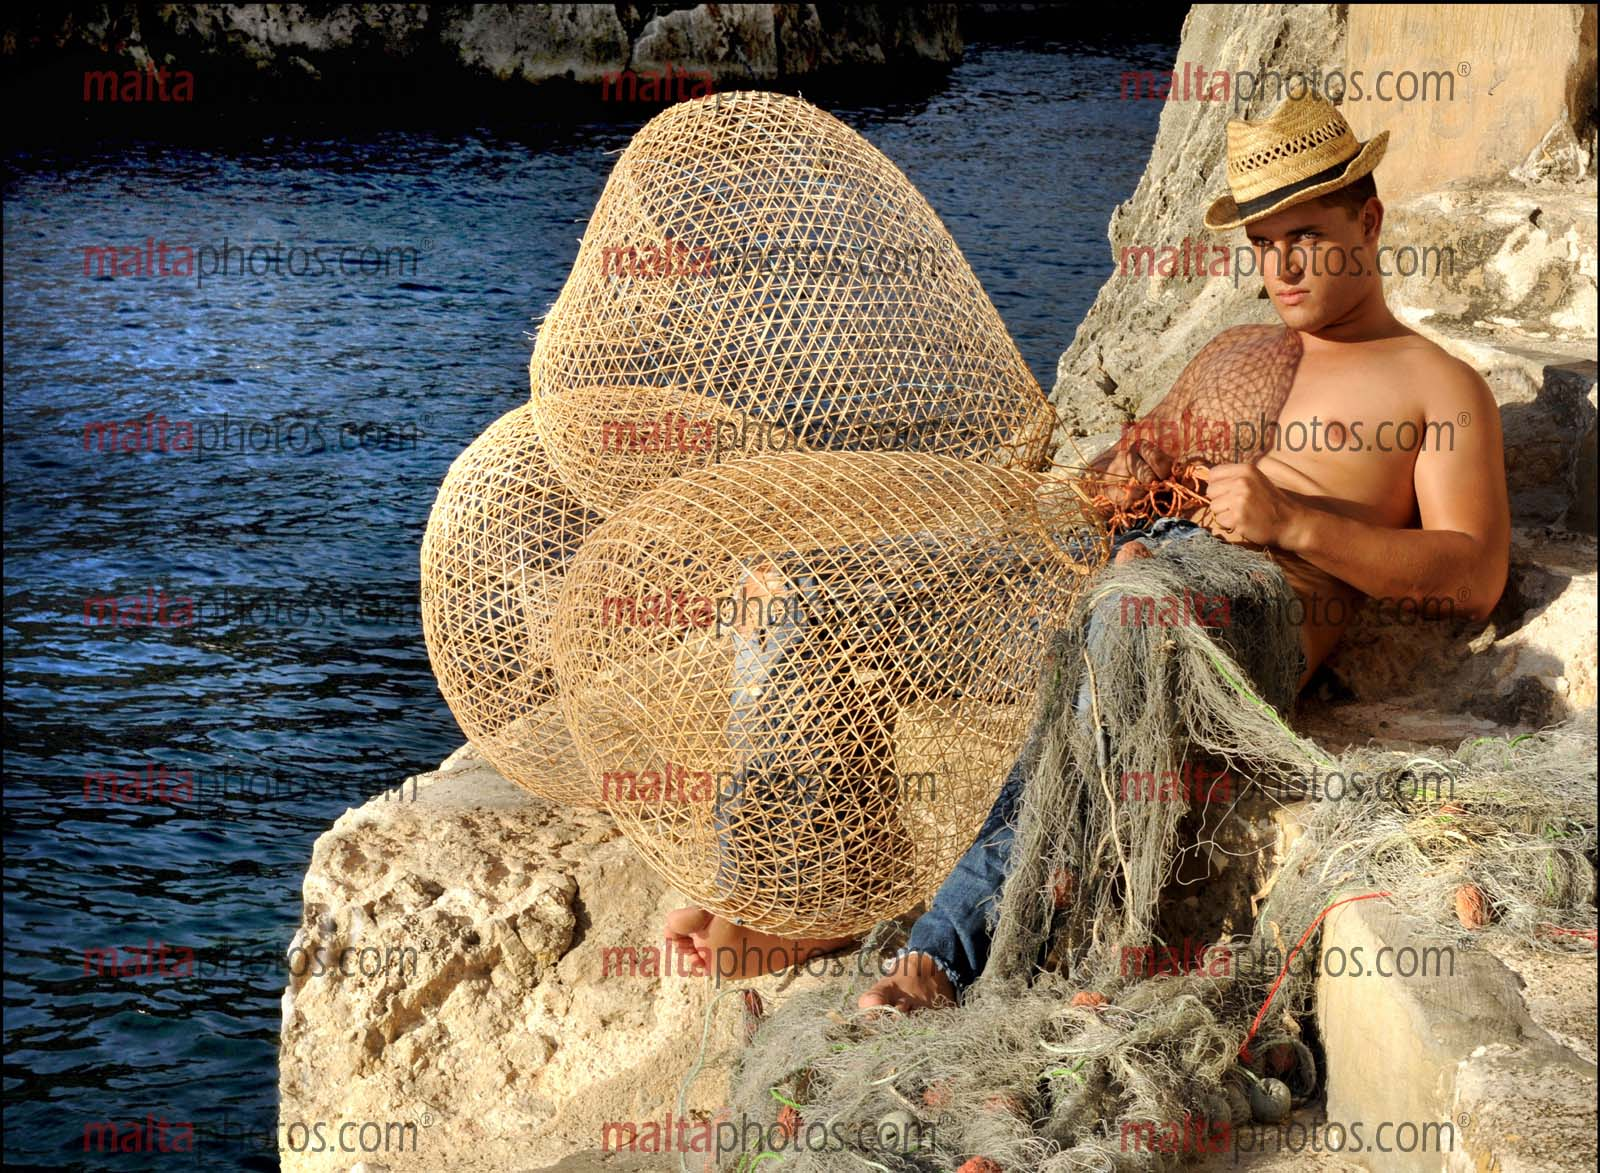 Fishing Fisherman Sea People Nets Malta Photos